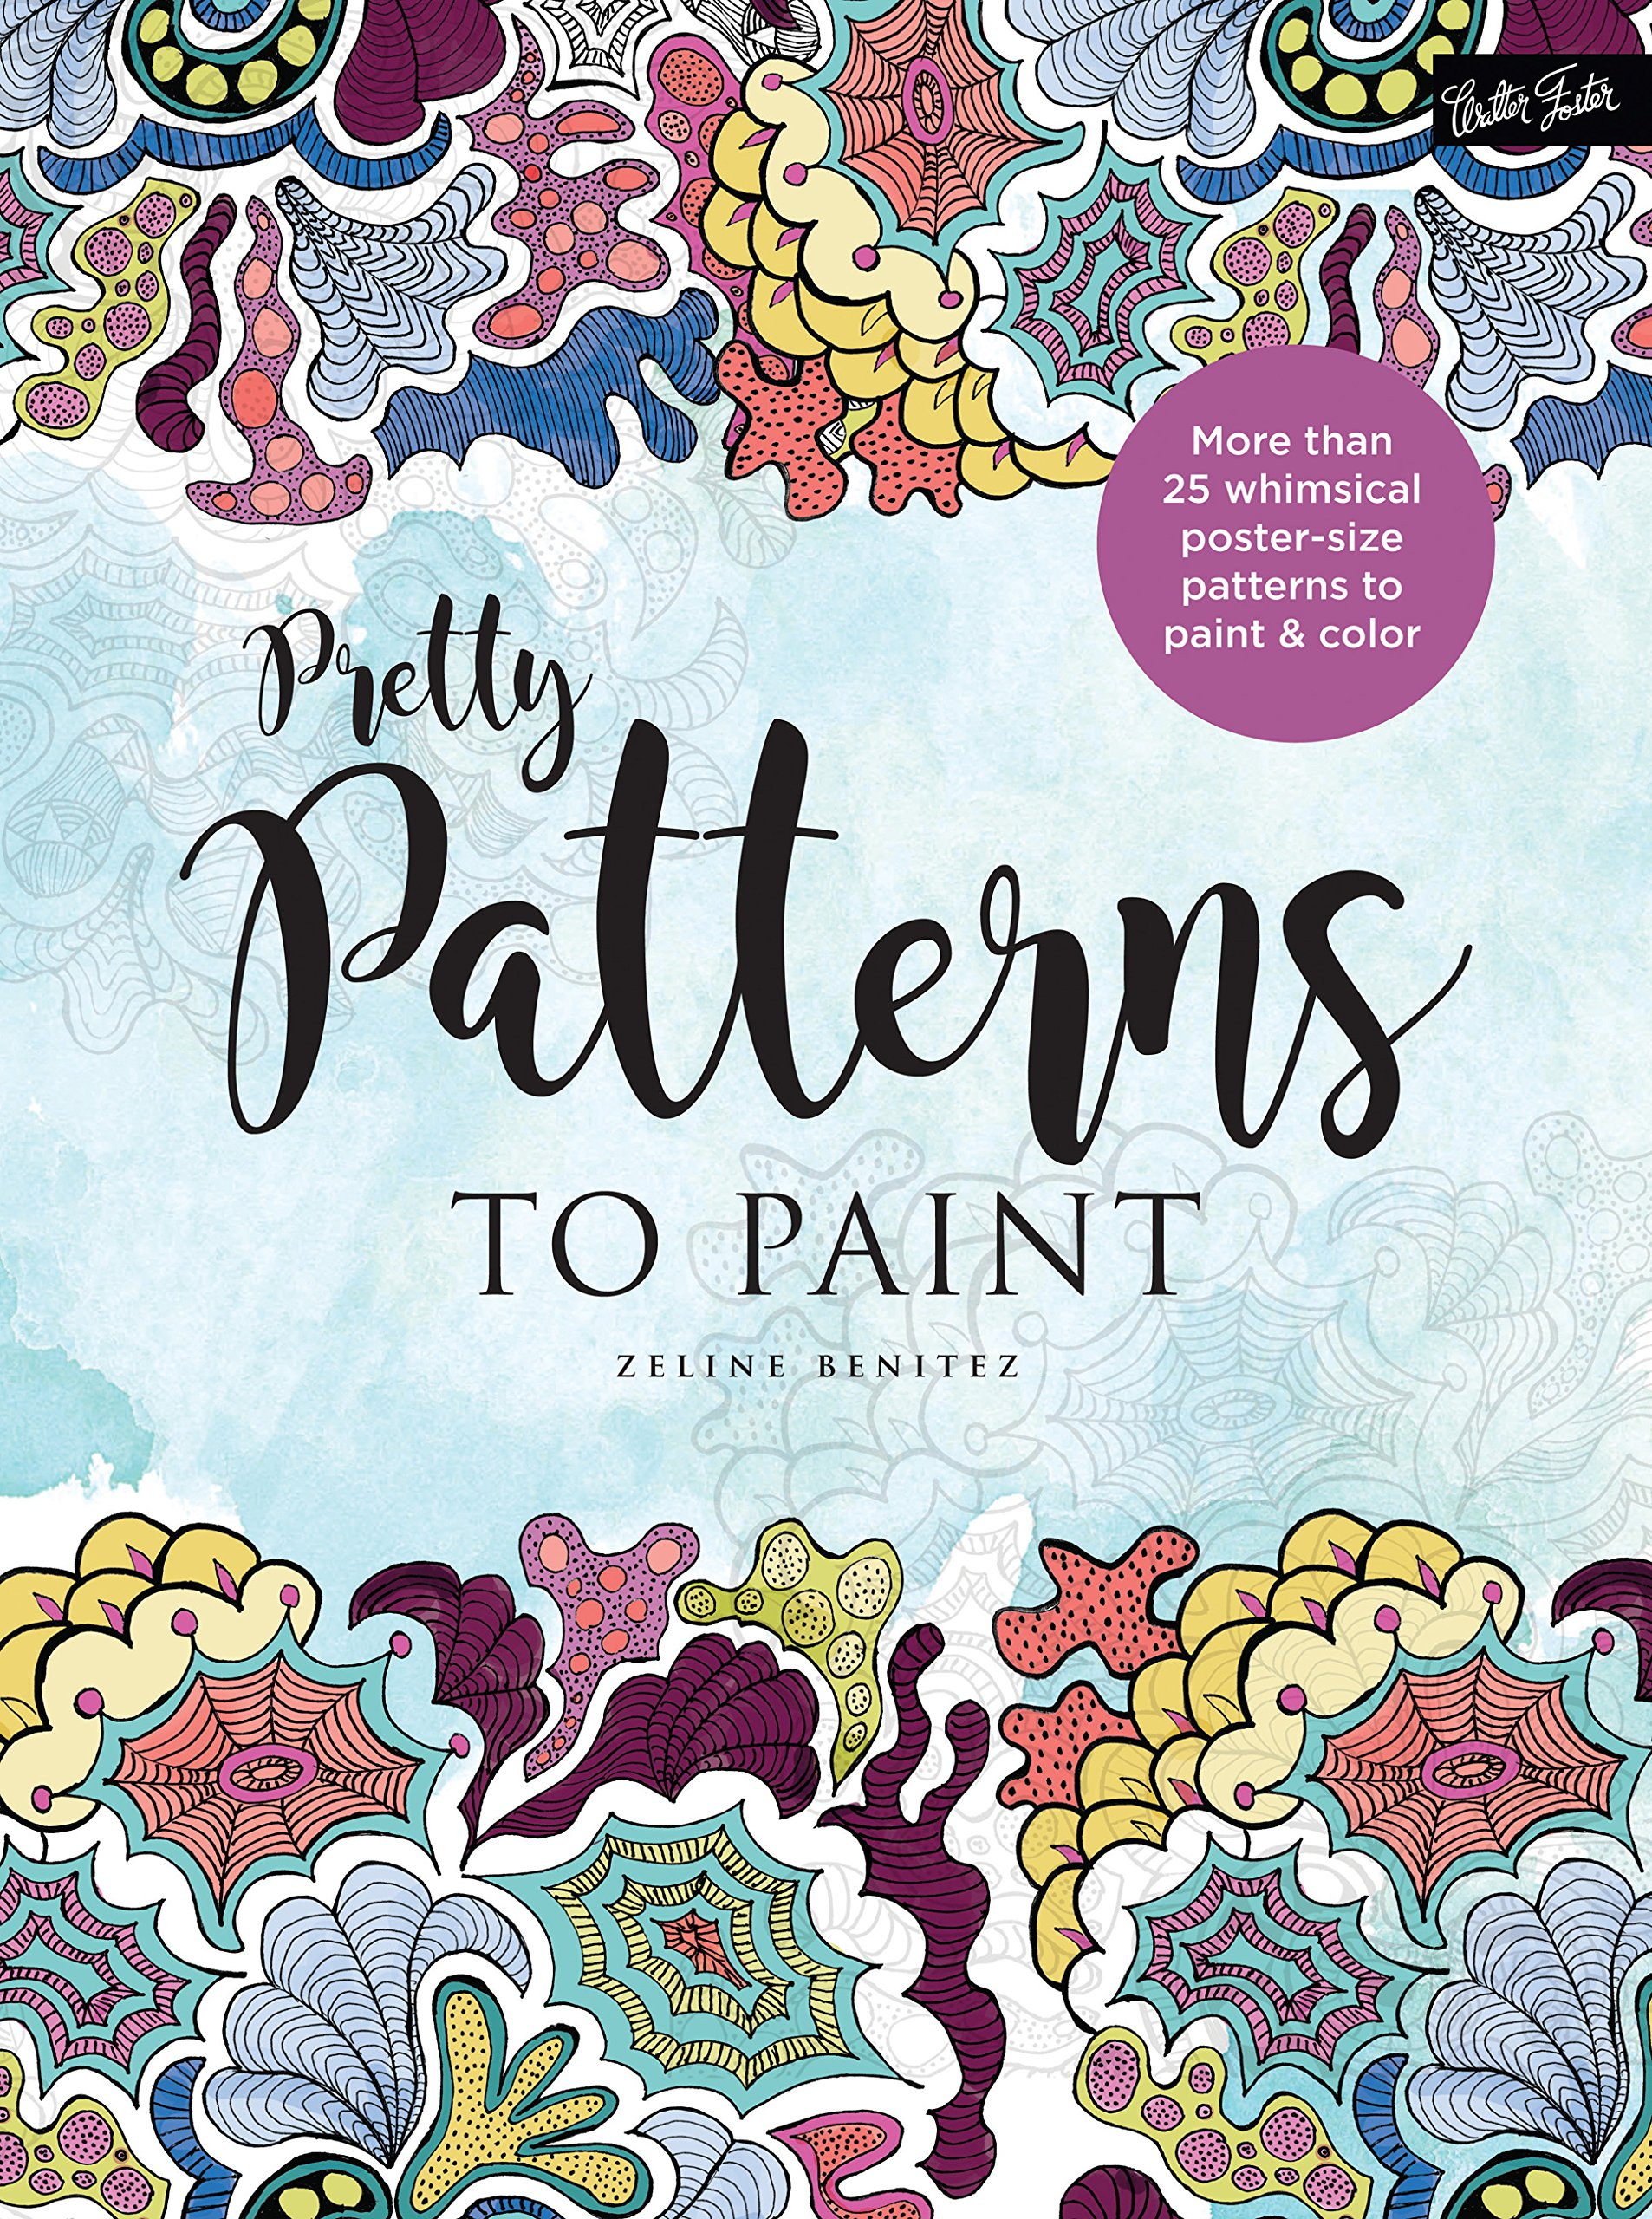 Pretty Patterns to Paint: More than 25 whimsical poster-size patterns to paint & color